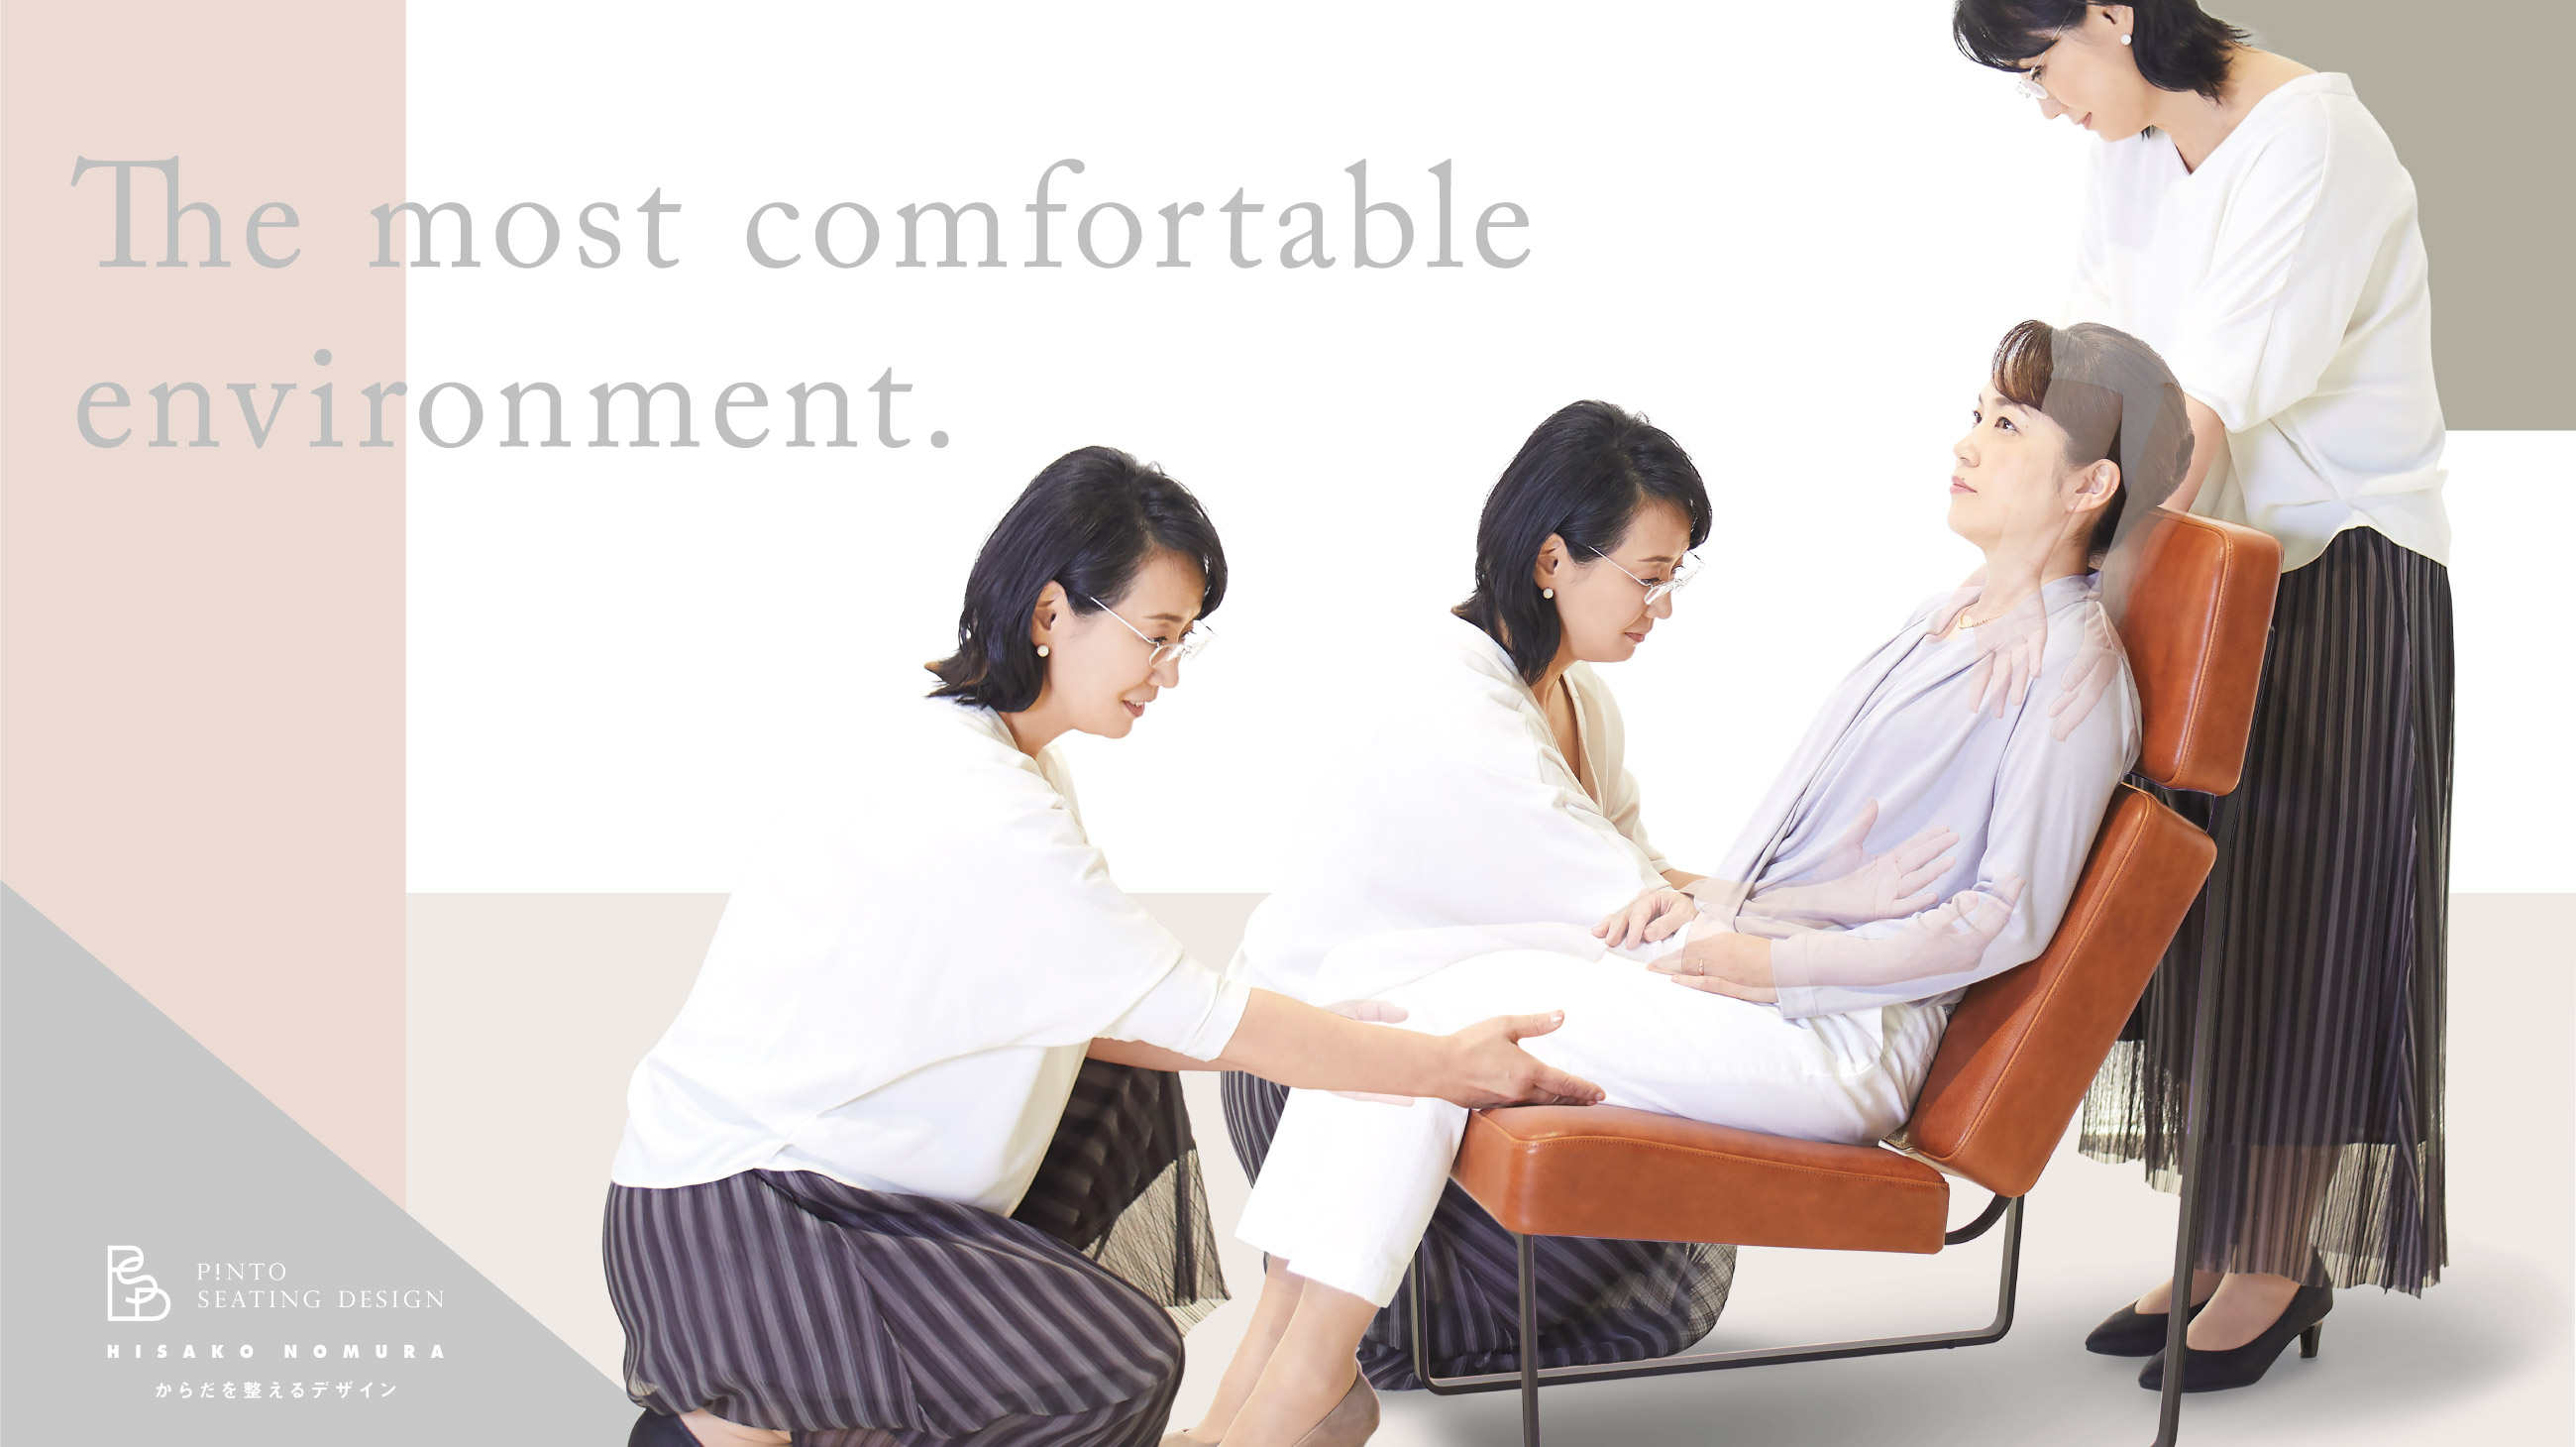 The most comfortable environment.